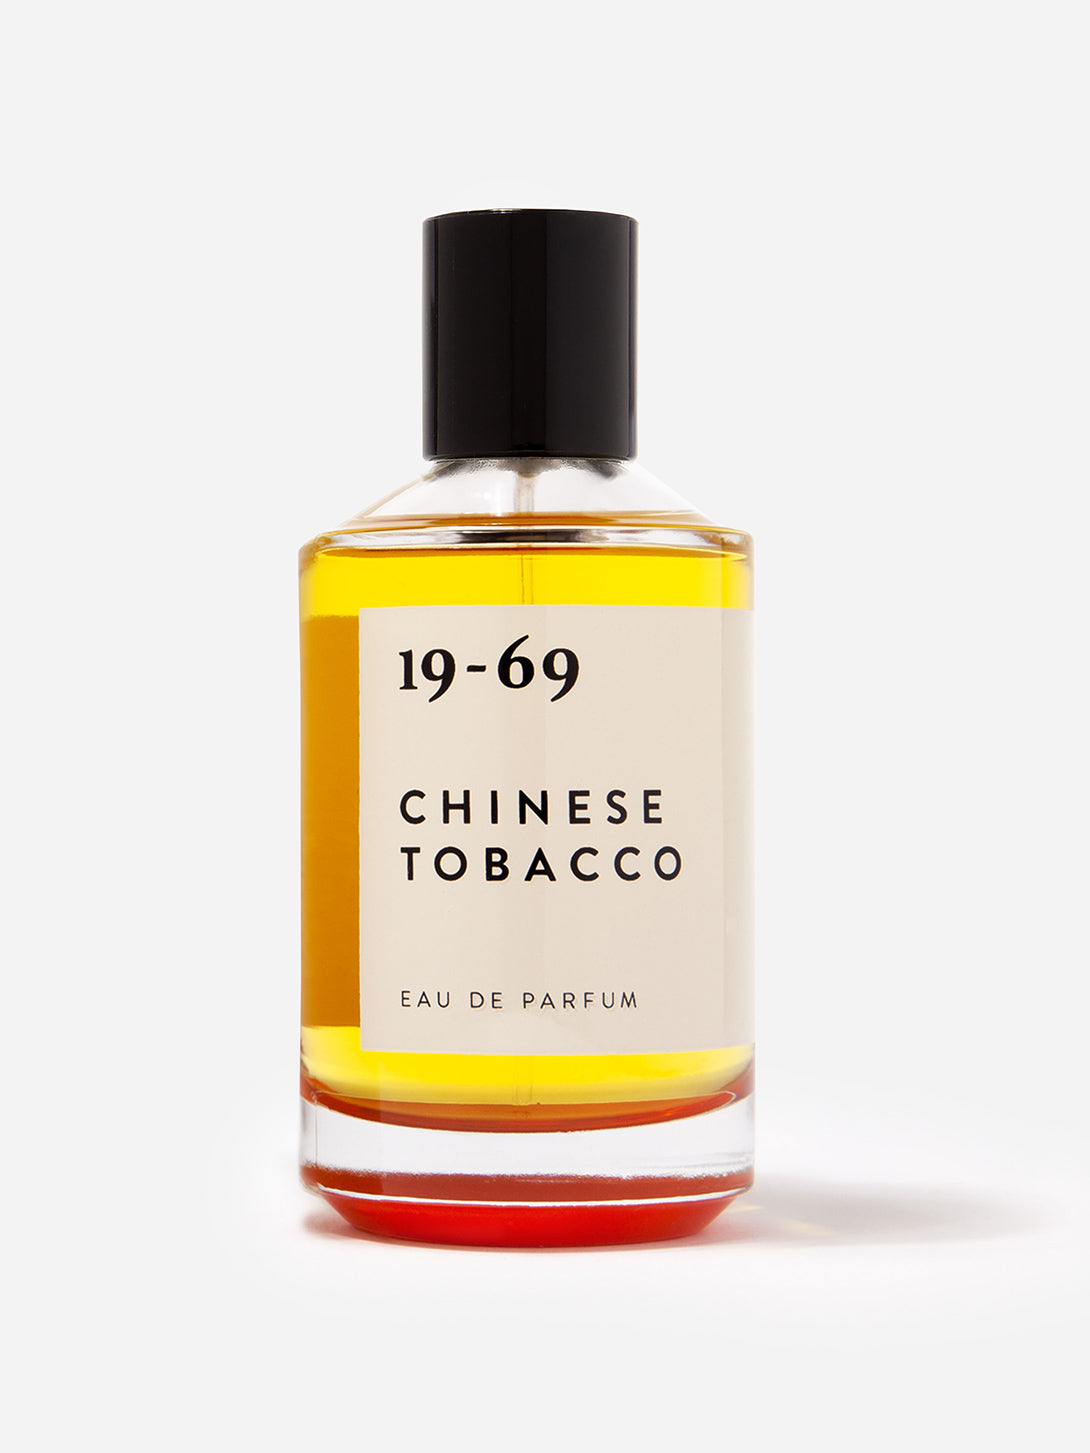 CHINESE TOBACCO perfume for men and women unisex chinese tobacco 100ml 19-69